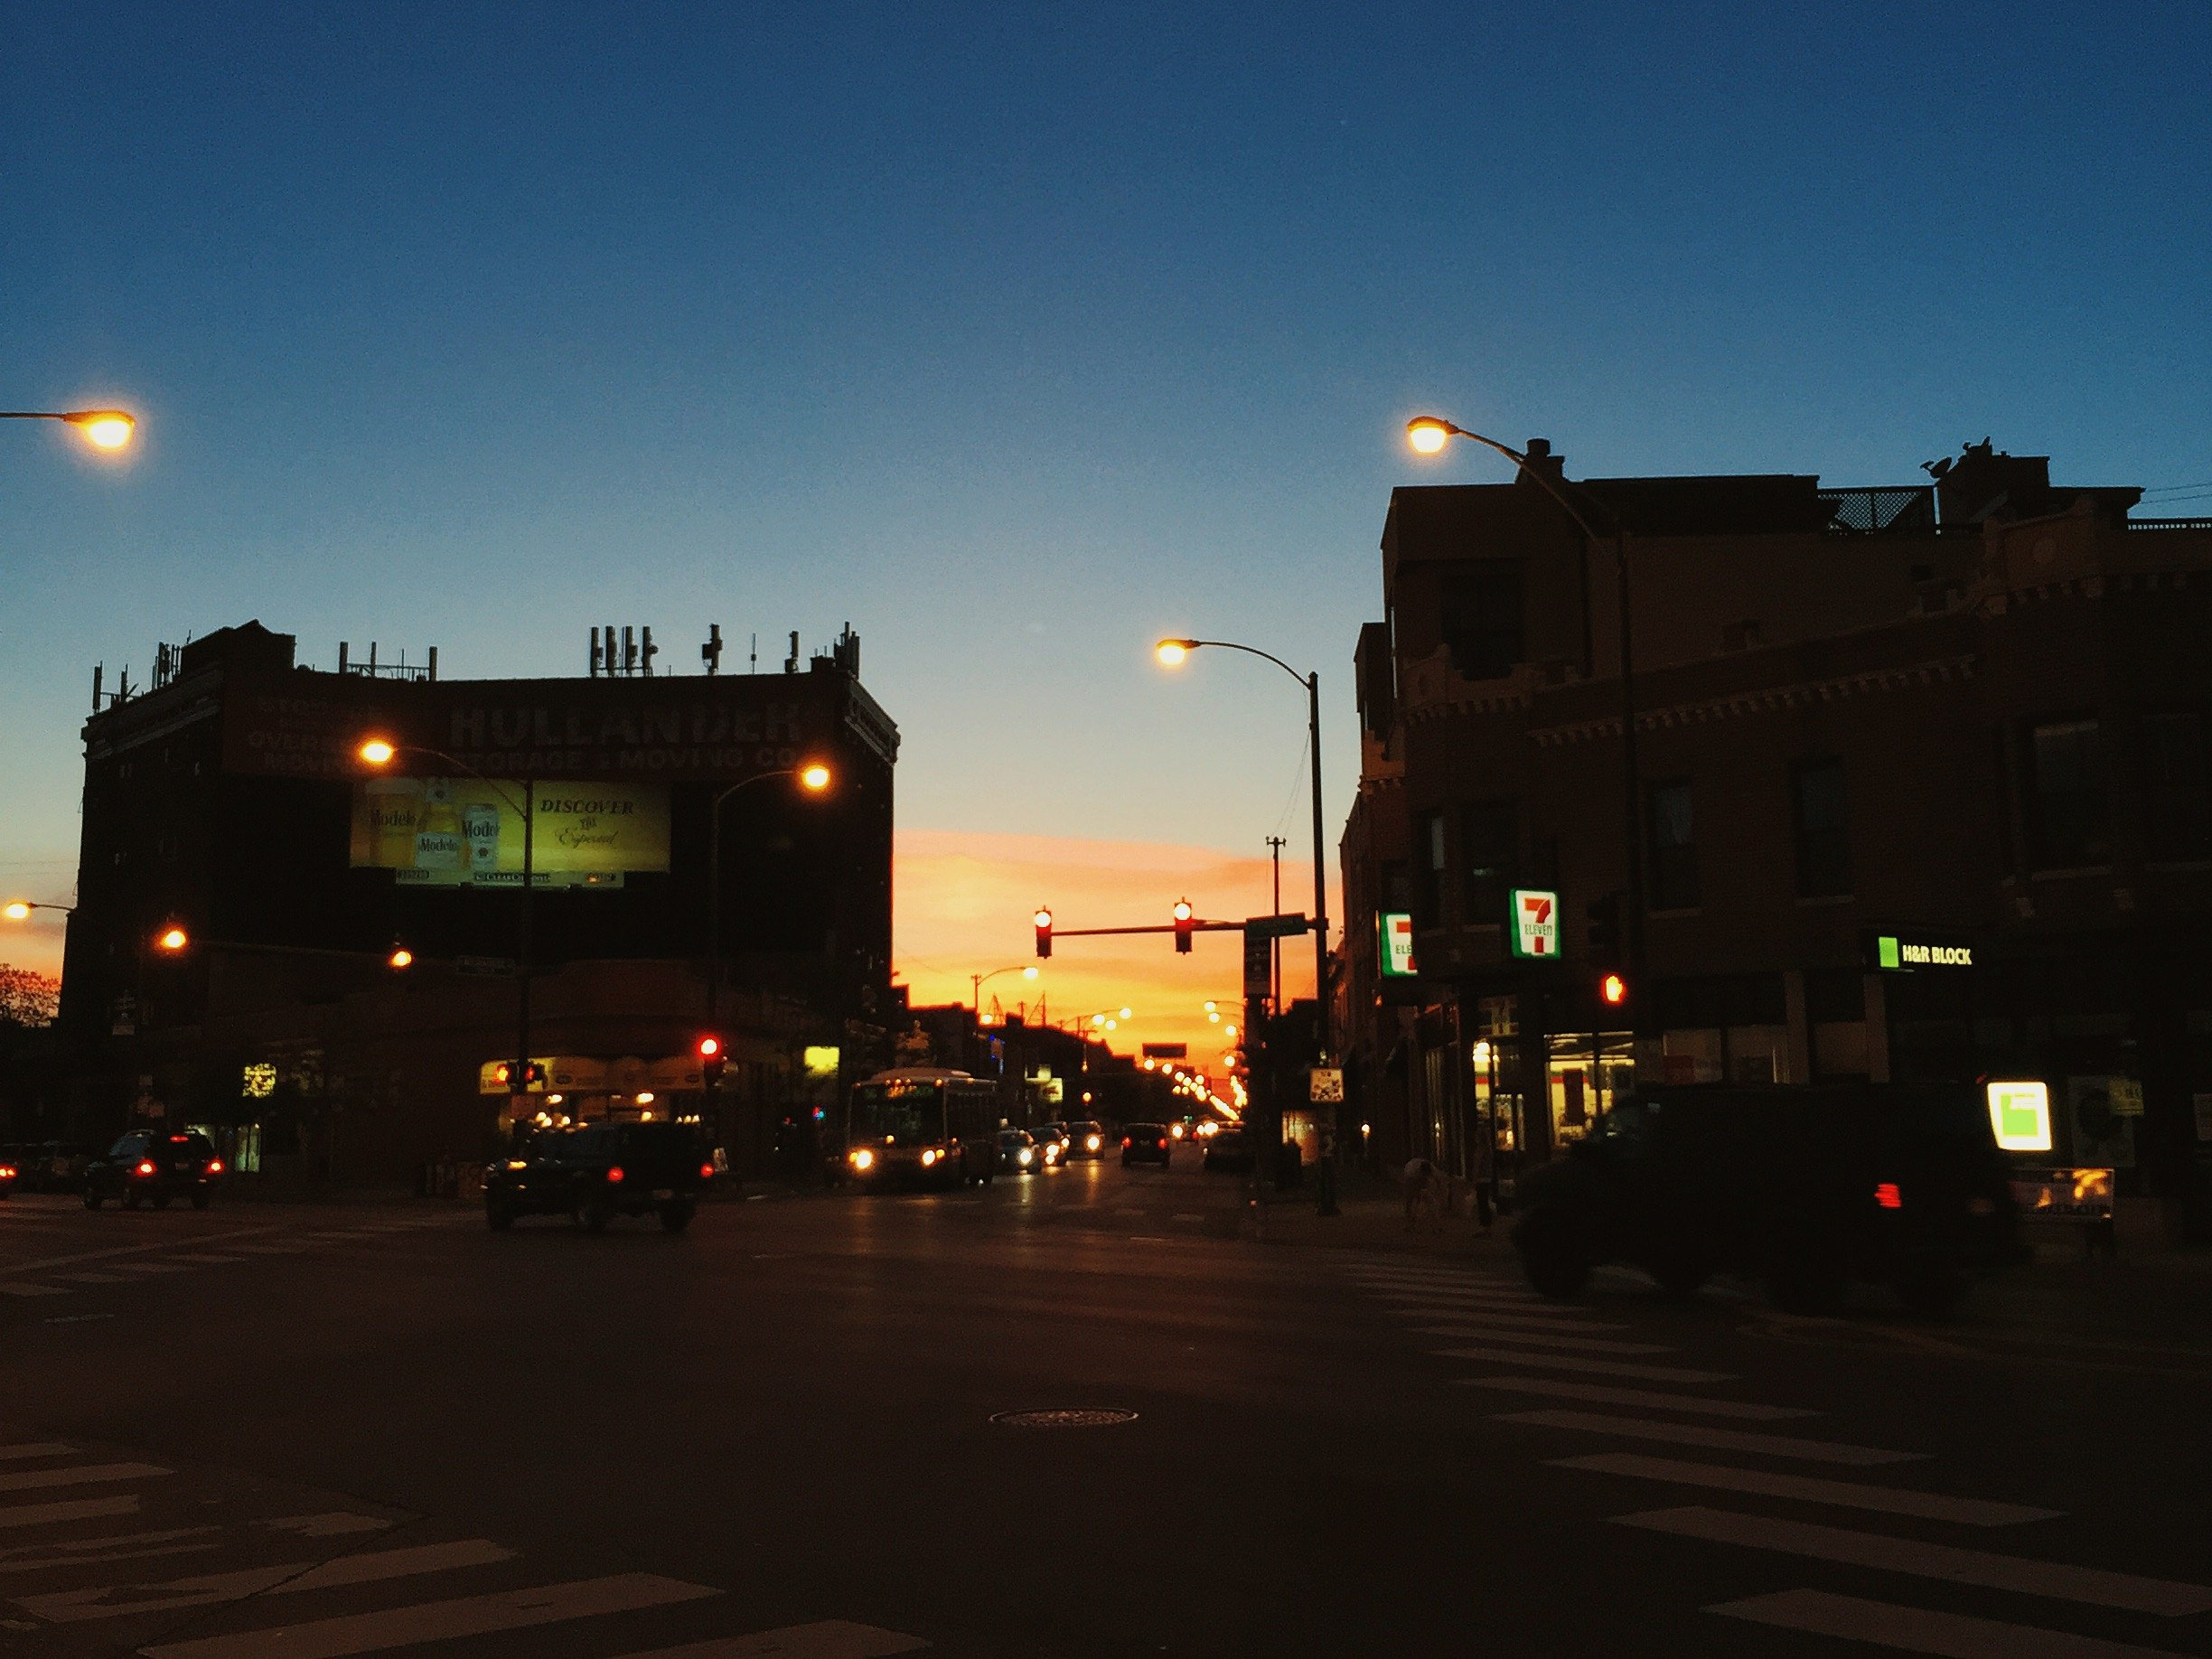 """""""This was one of those serene moments when everything feels right. You're by yourself biking home at dusk, you stop at an intersection andtake in everything around you and think about how great it is to live in such a big, diverse city."""""""